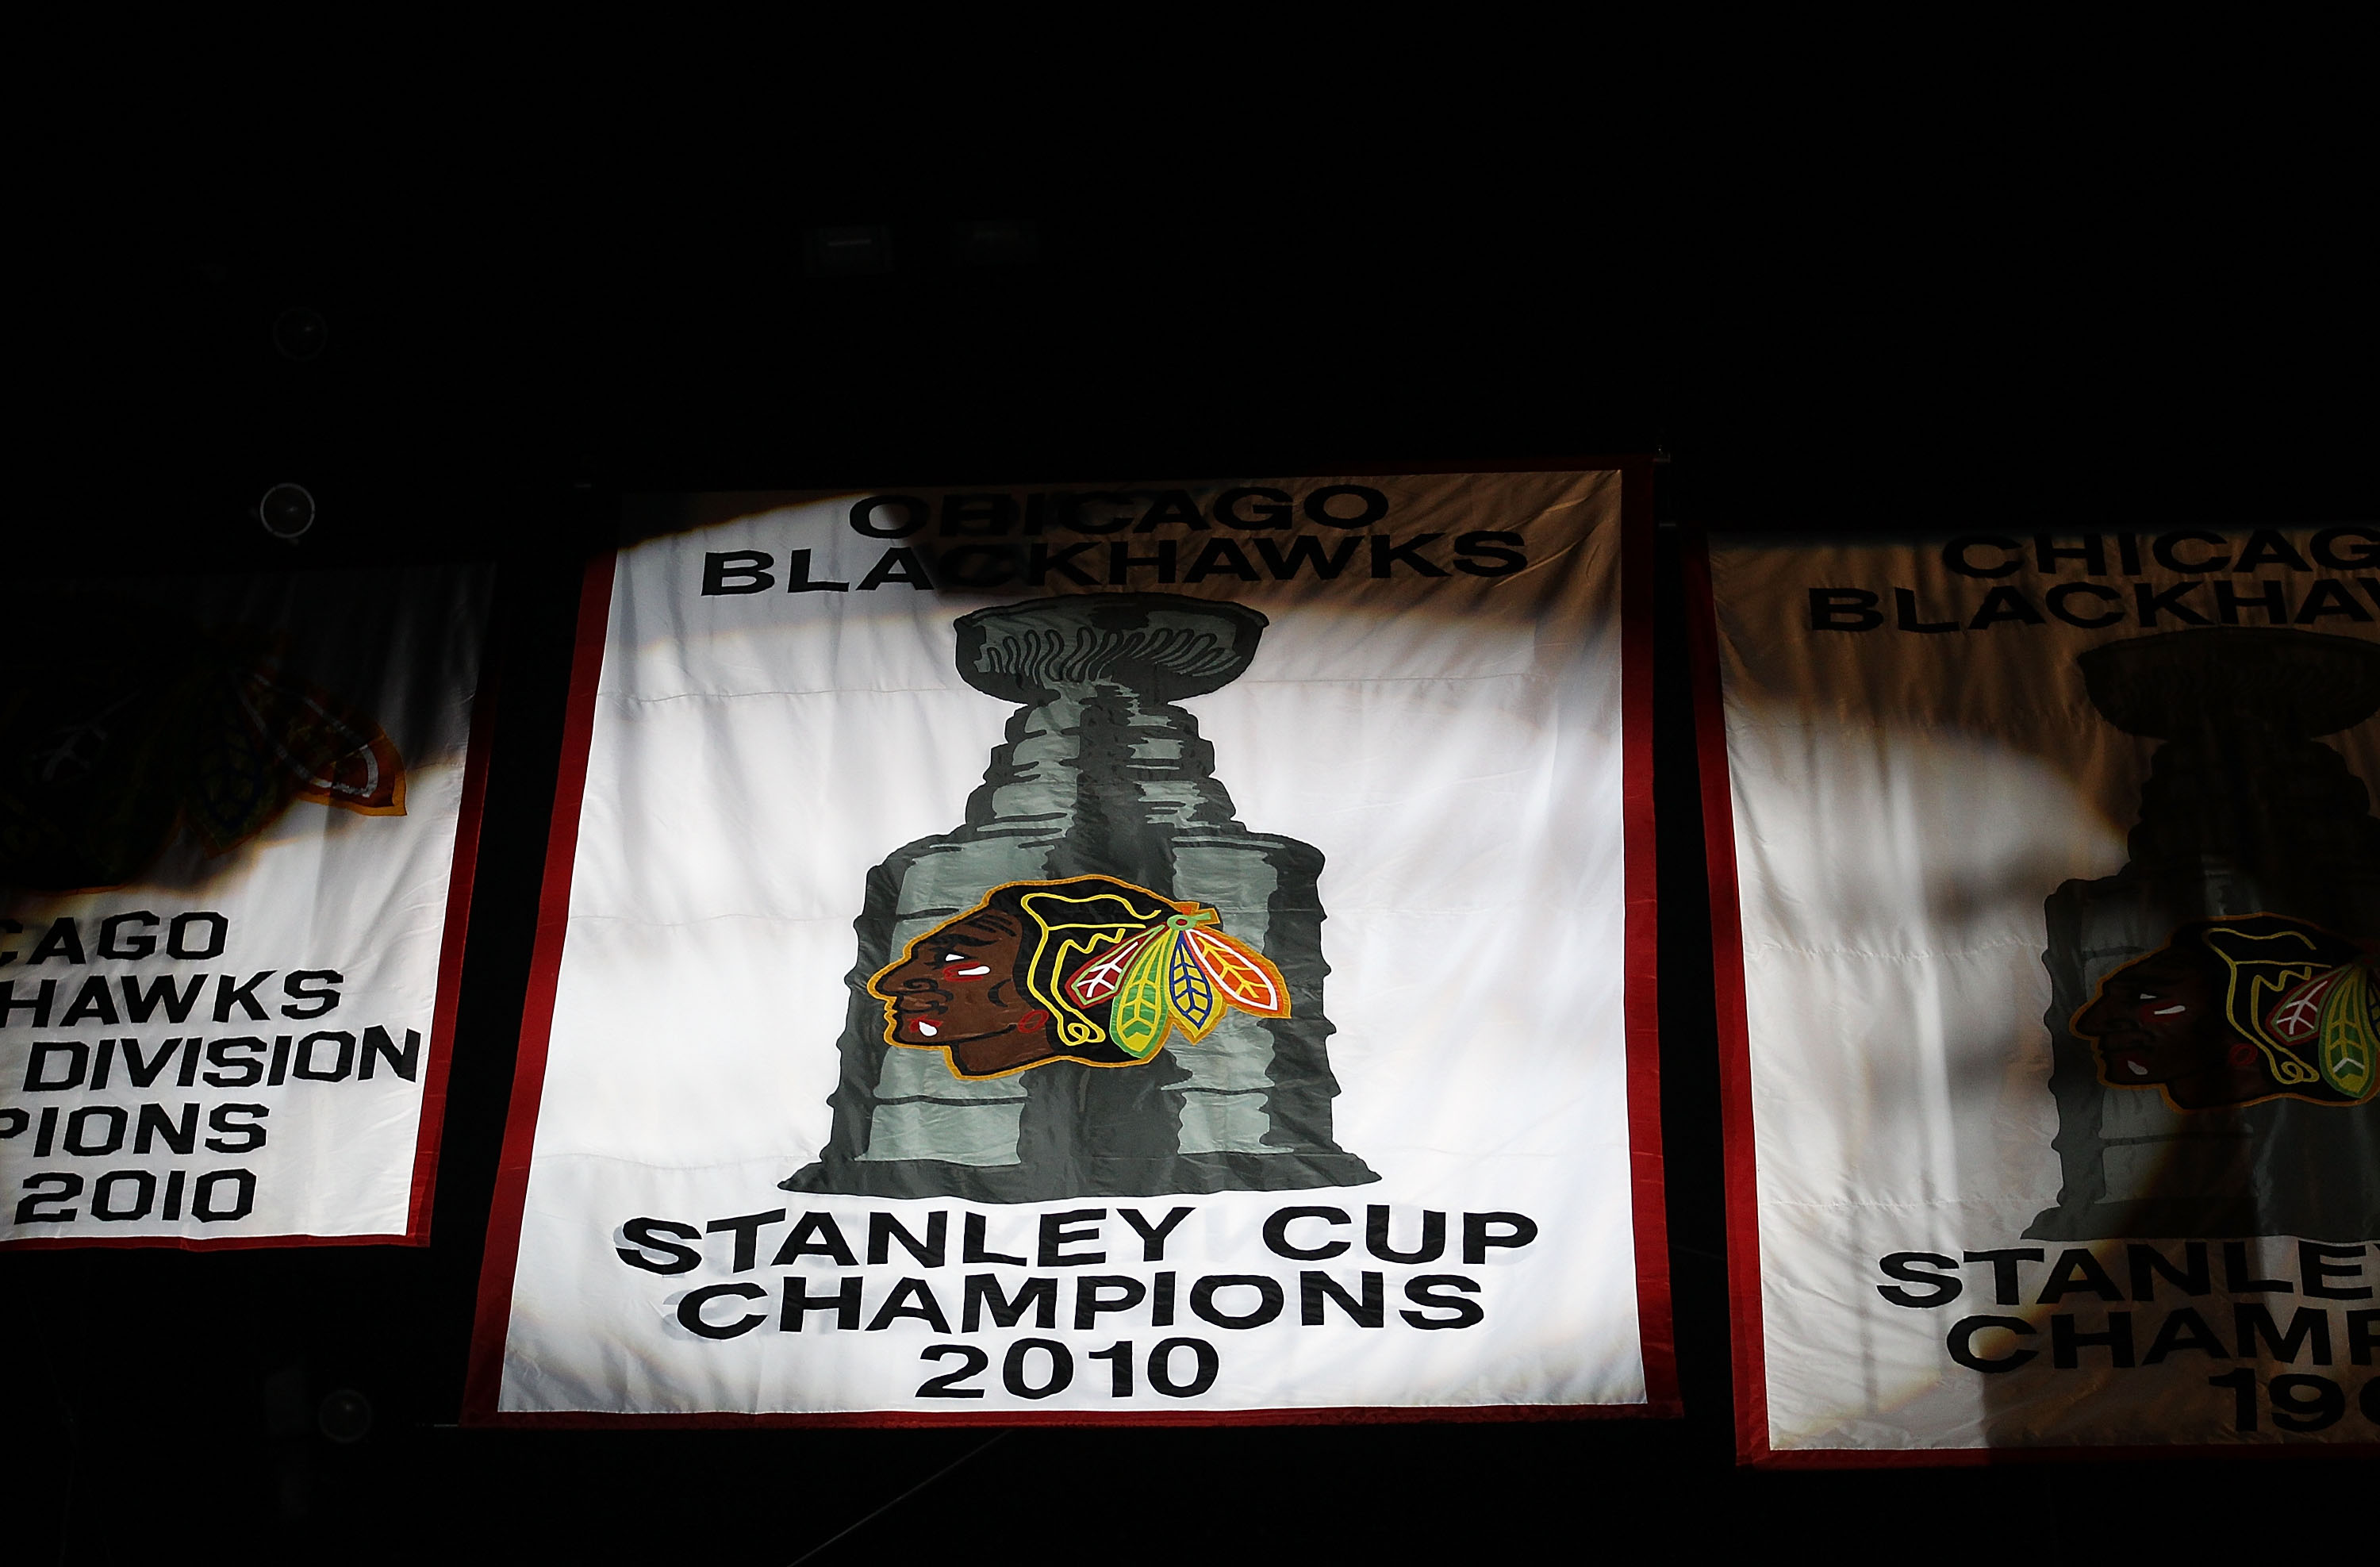 The Hawks' 2010 glory: tarnished forever.